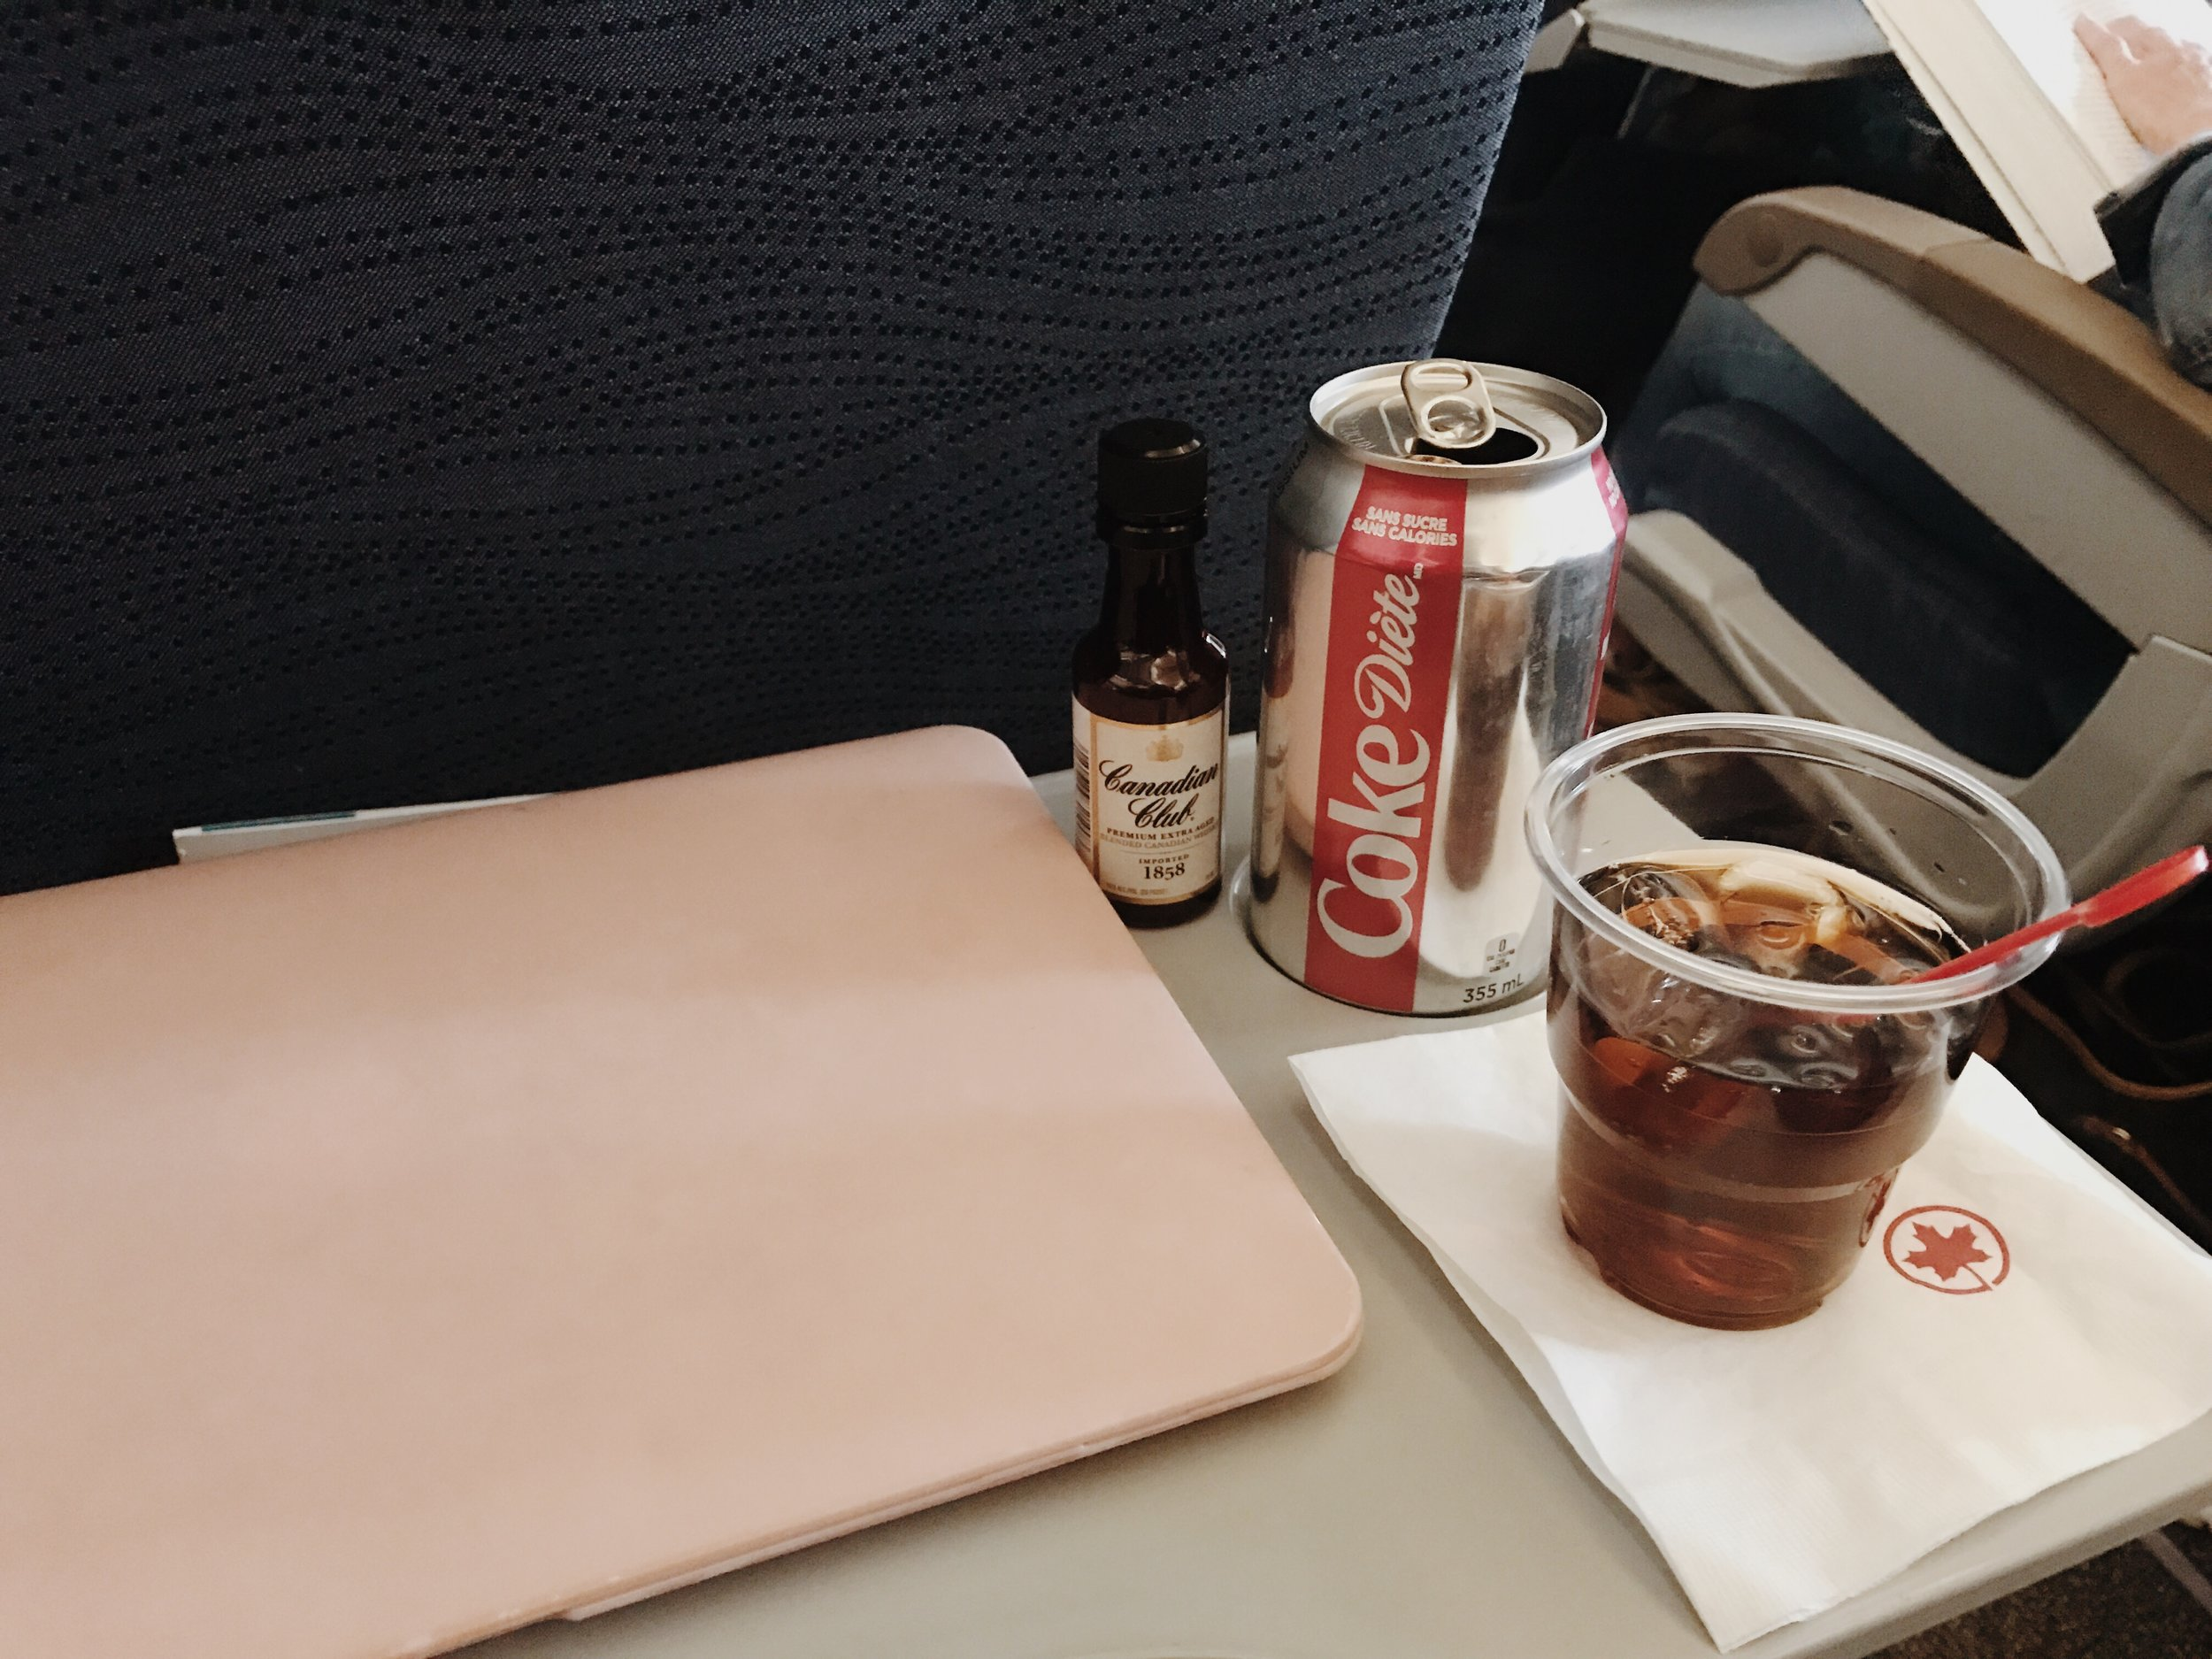 solo-travel-shiskey-diet-coke.jpg